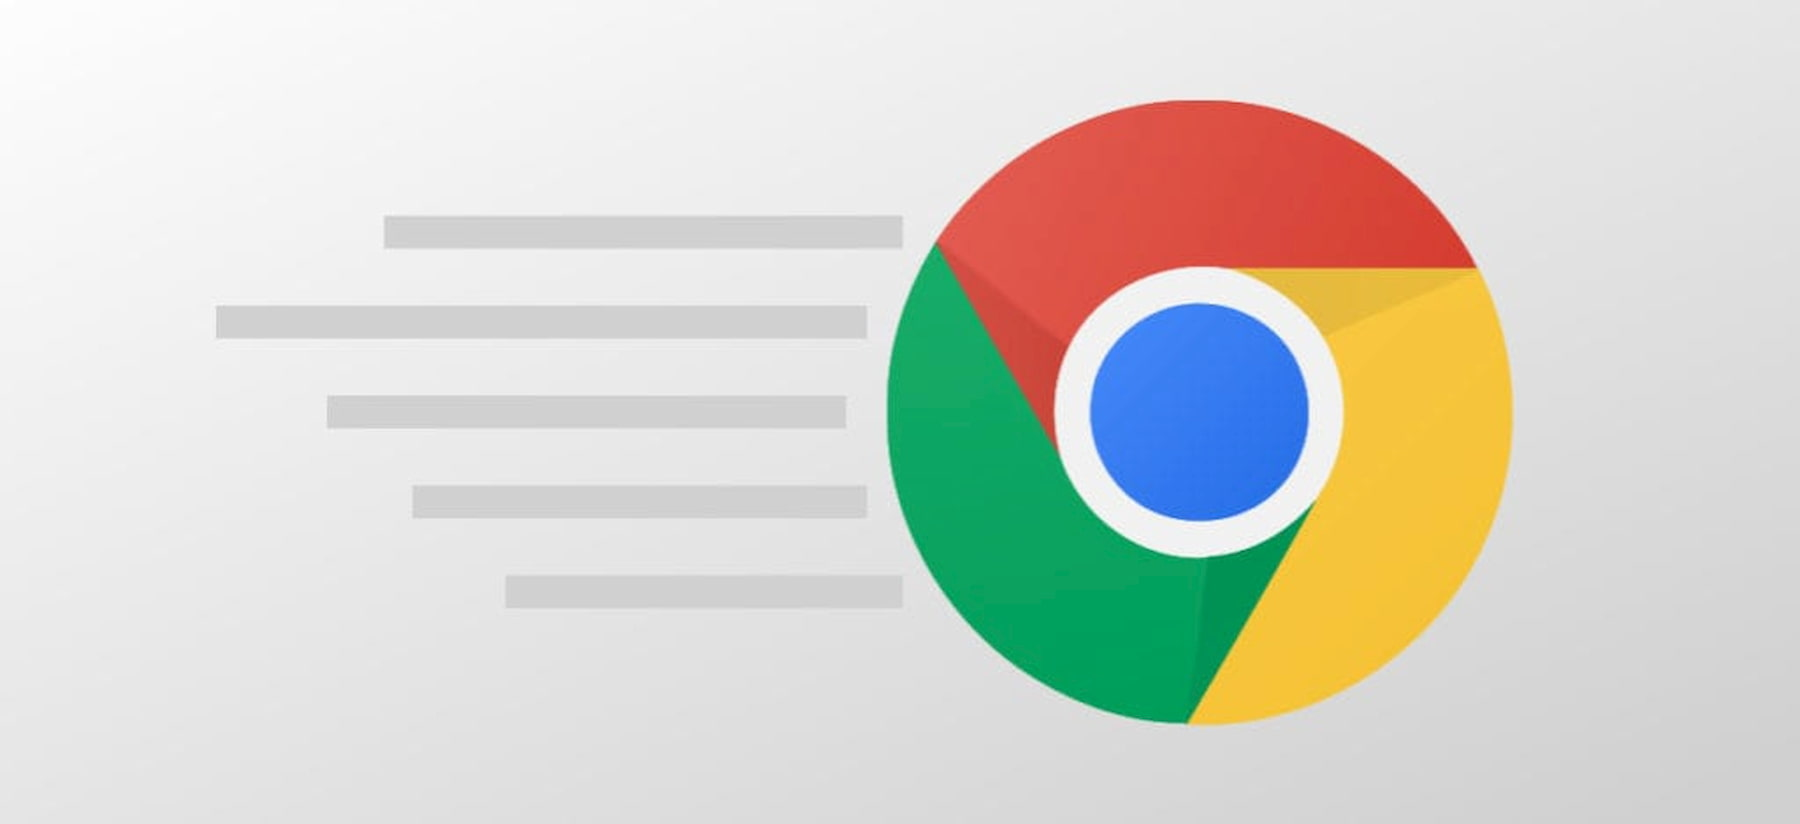 Google integrates Web Vitals HUD into the Chrome browser